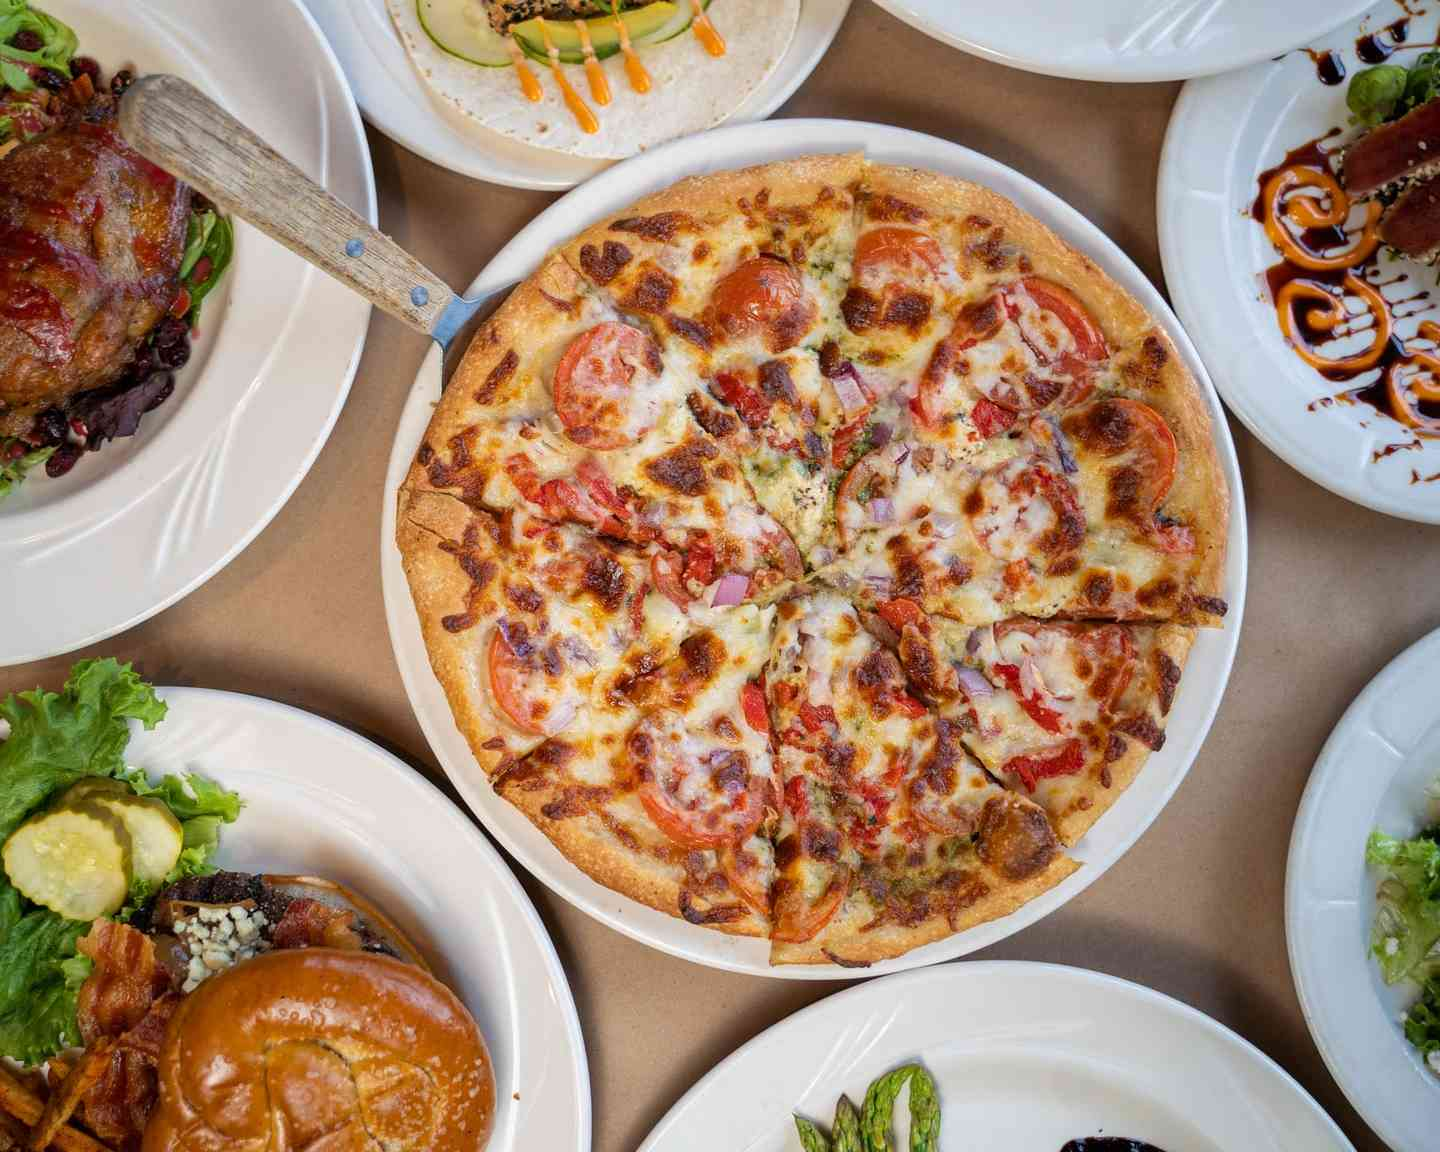 Pizza and assorted dishes at Bricco Akron in Akron, OH